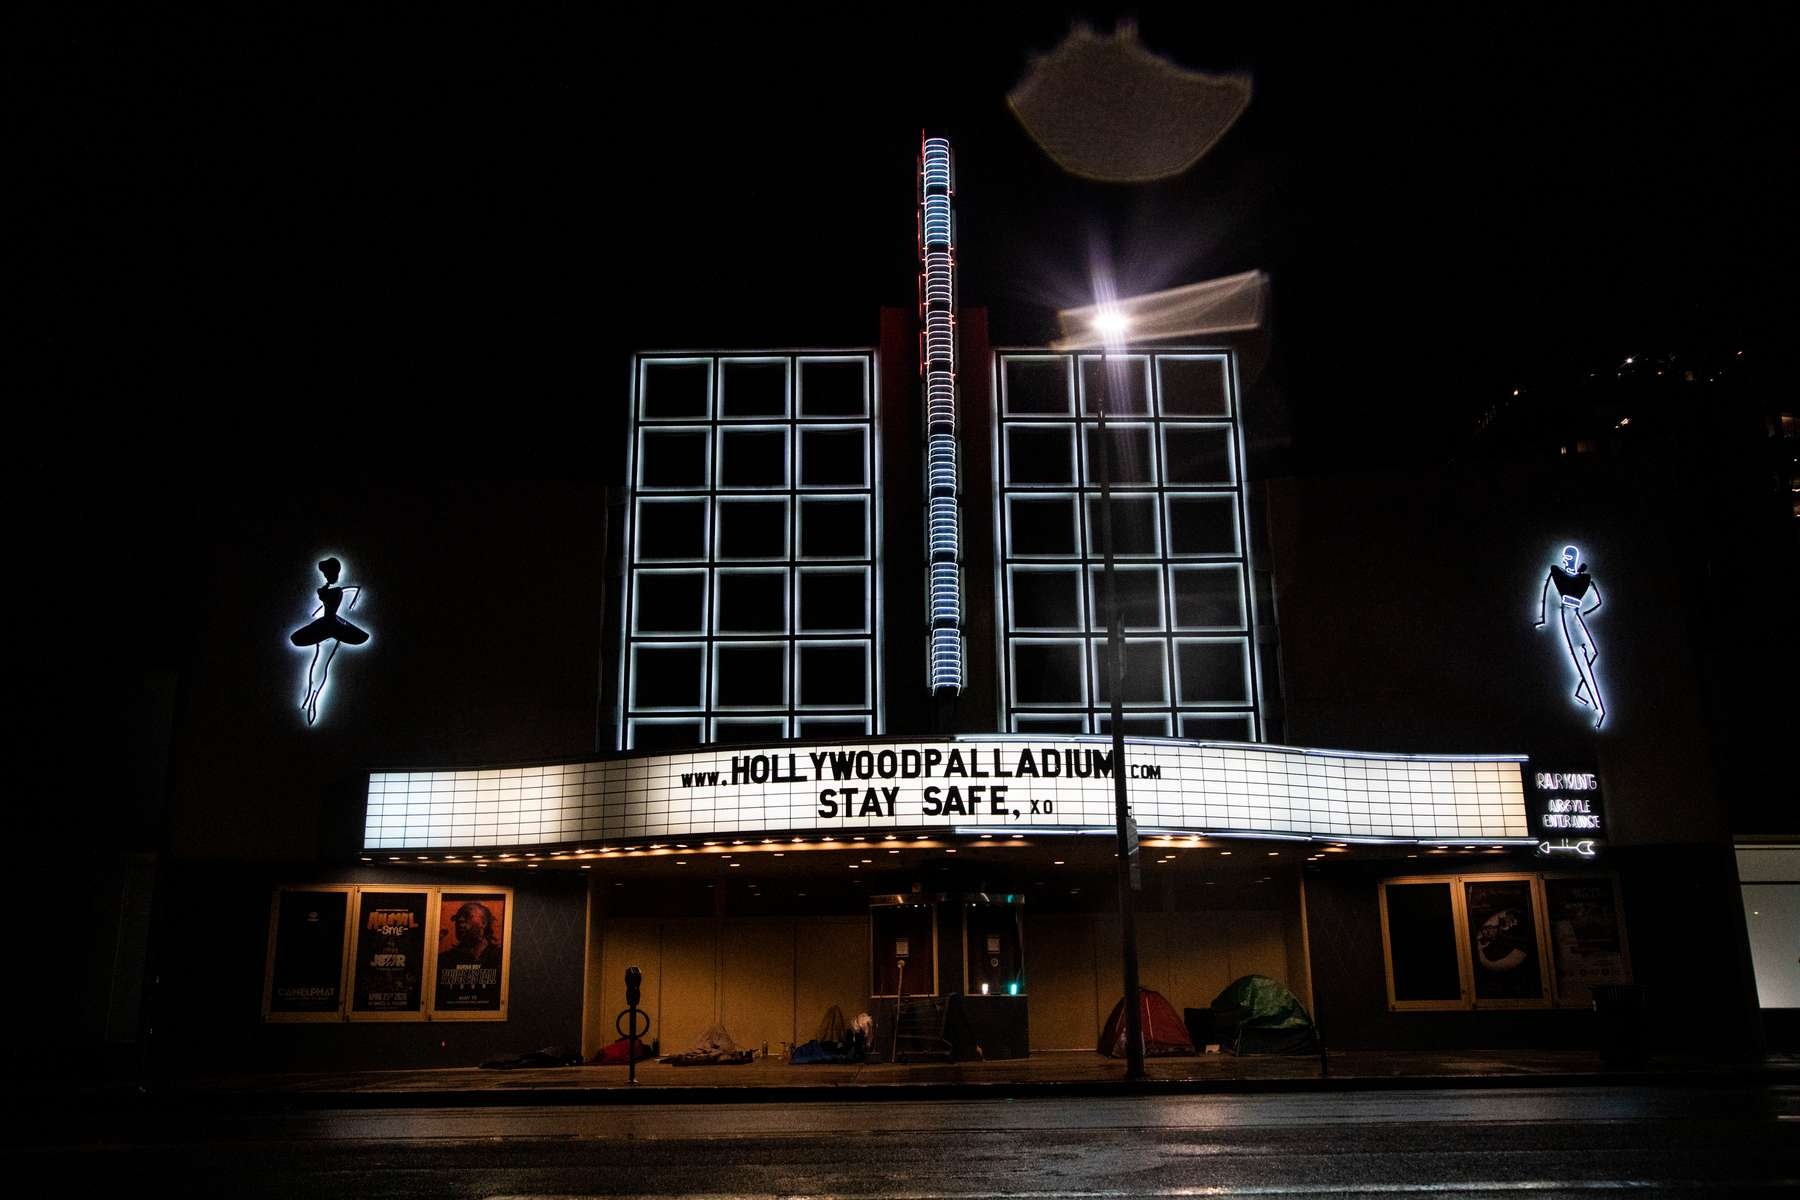 The Hollywood Palladium, a concert venue, remains closed during the Stay At Home Order to slow the spread of COVID-19, on April 9, 2020, in Los Angeles, California.